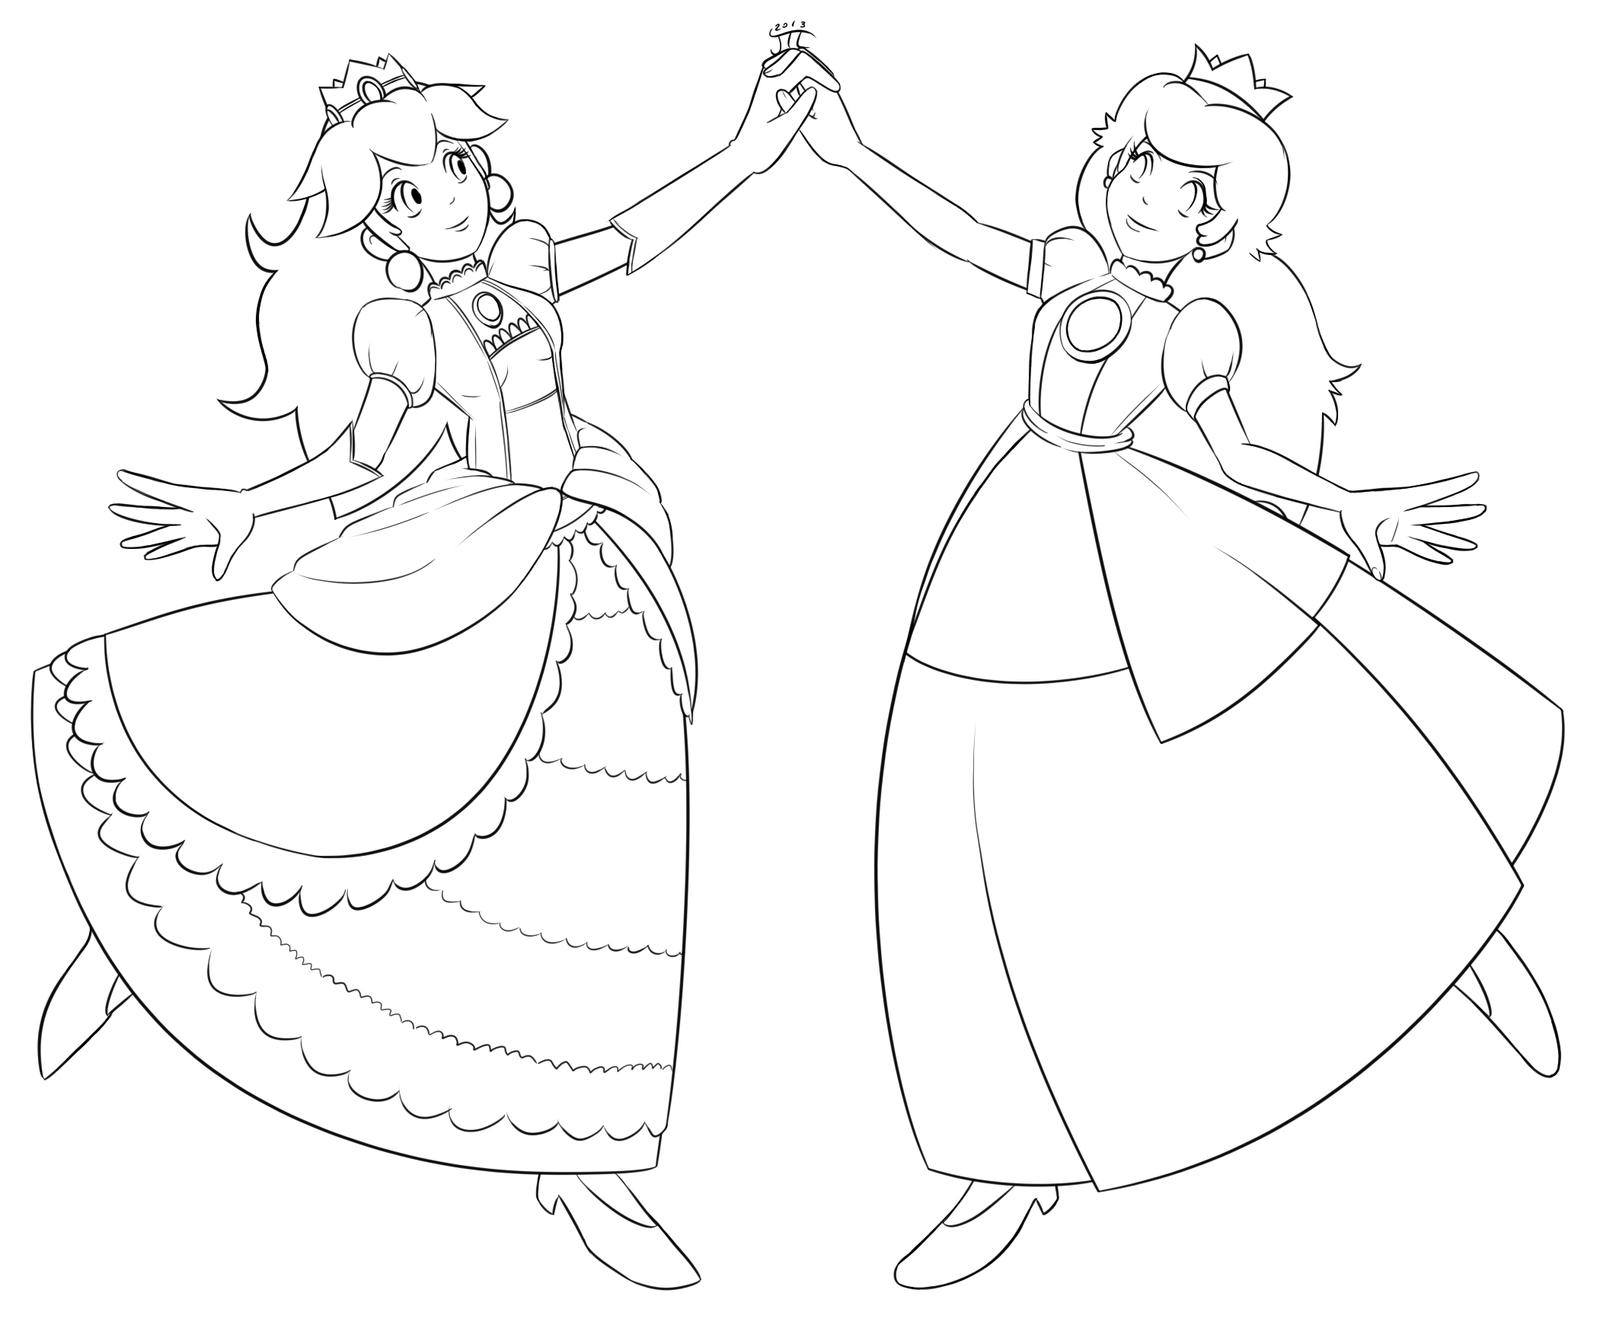 coloring pages princess peach - mario princess peach toadstool ver 1 lineart by